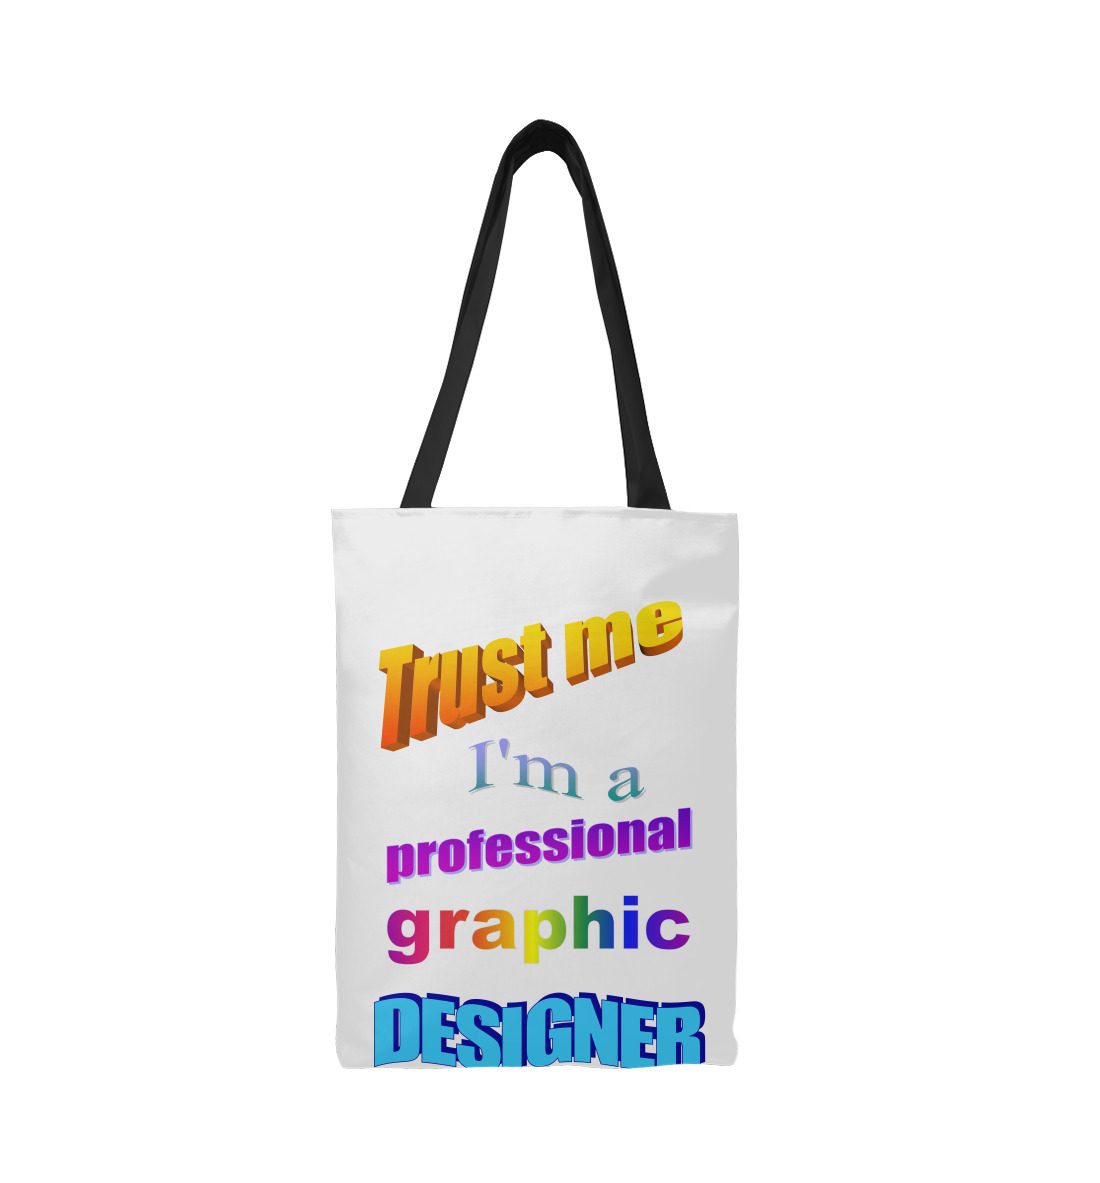 Trust me, I'm a professional graphic designer becoming a product designer